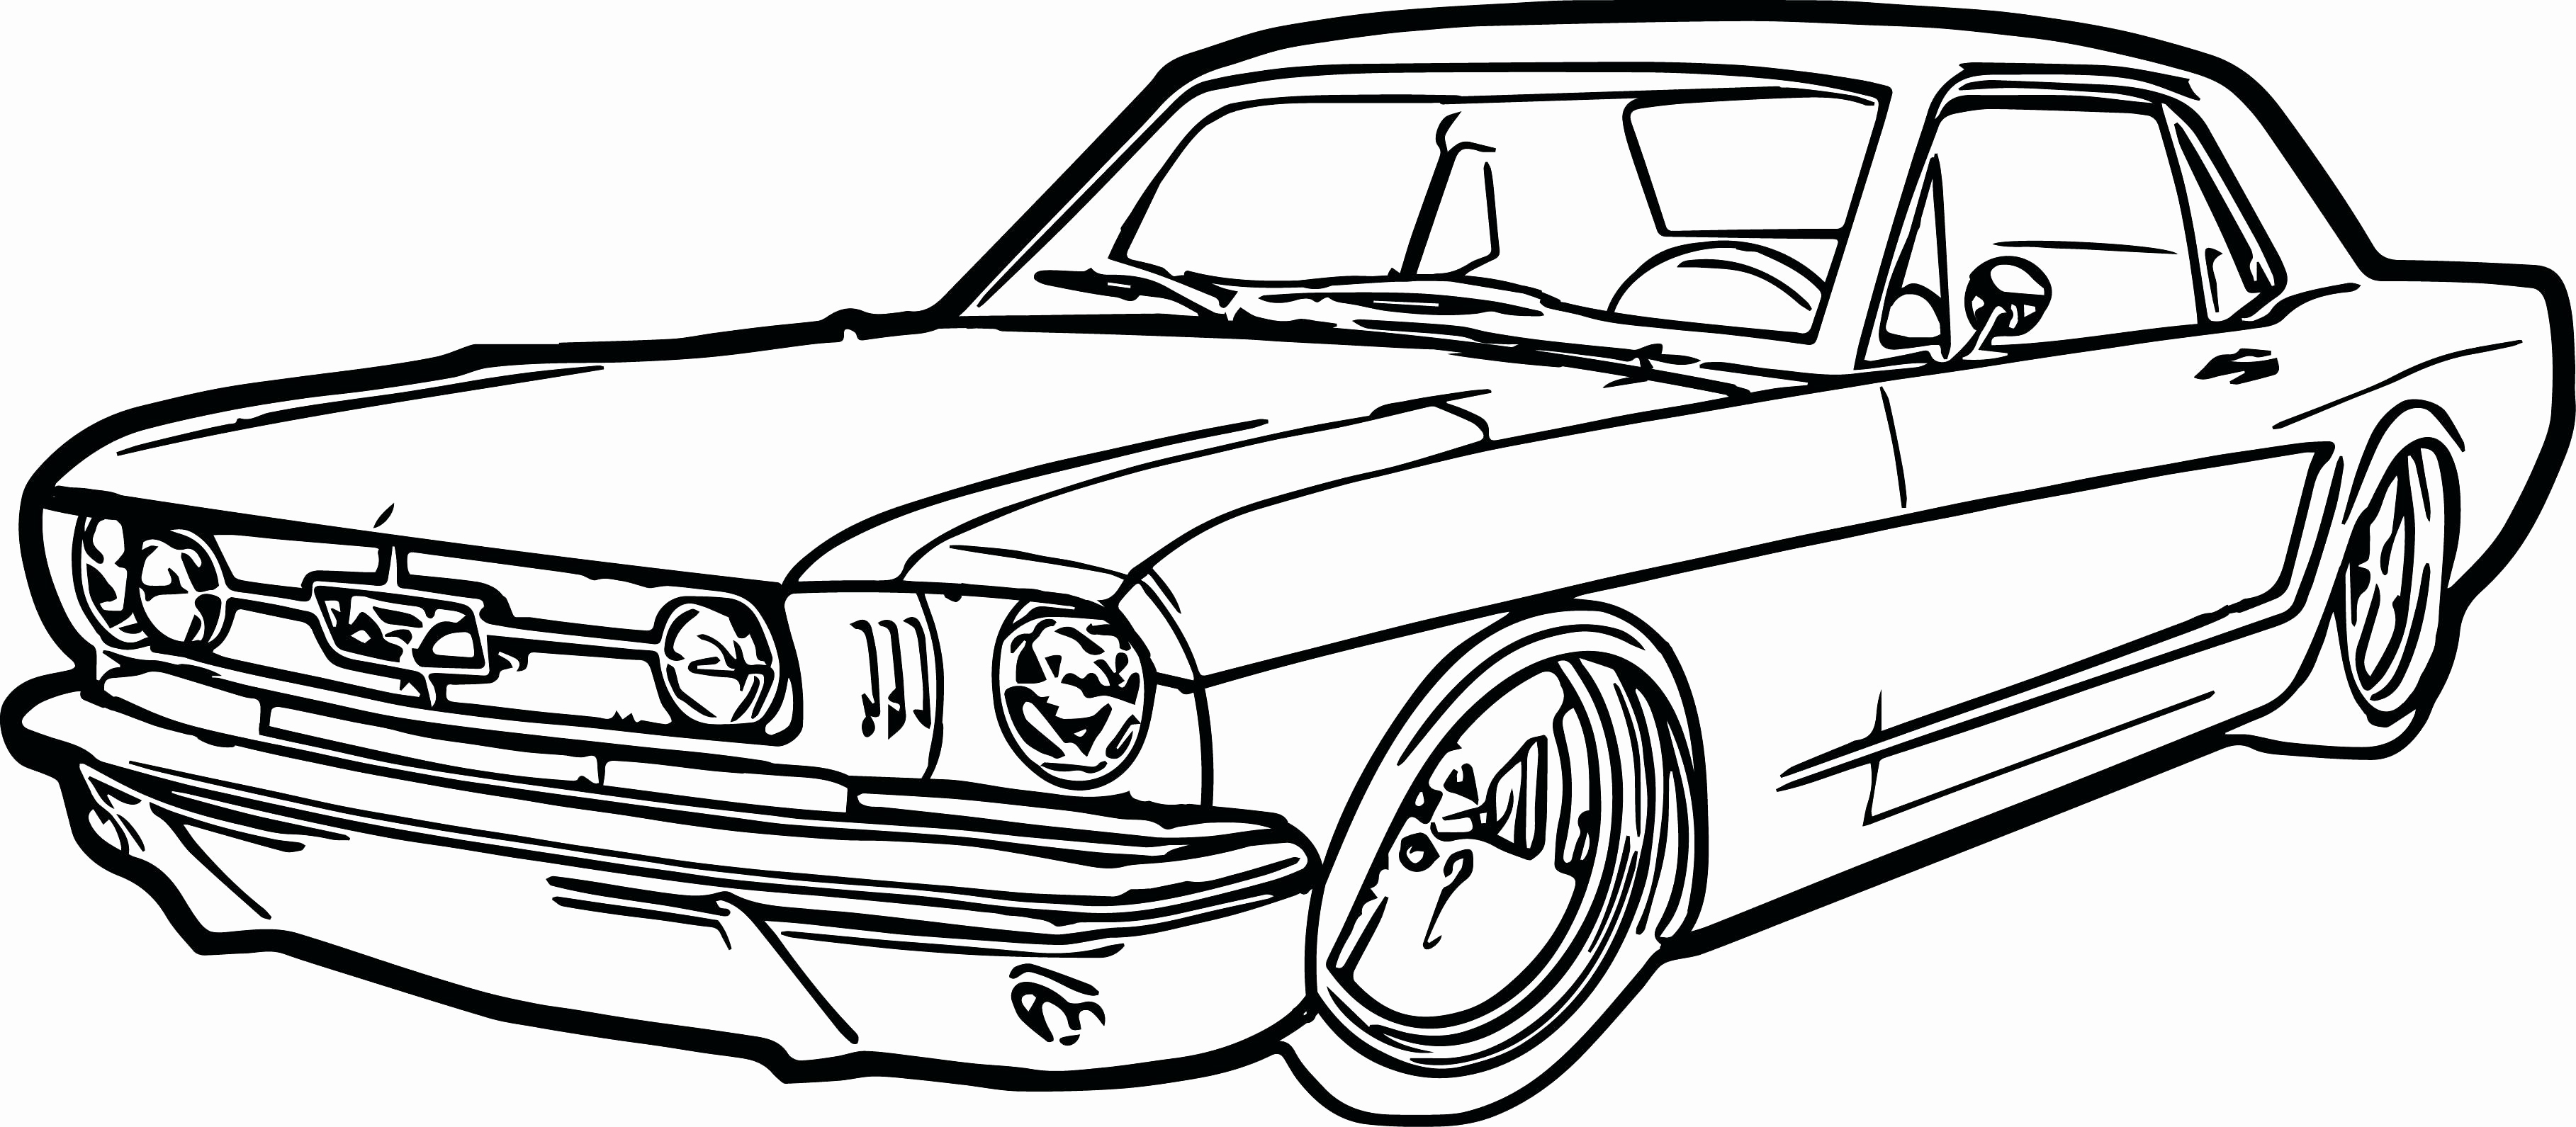 cars coloring pages free printable lightning mcqueen race car coloring pages for free cars coloring pages